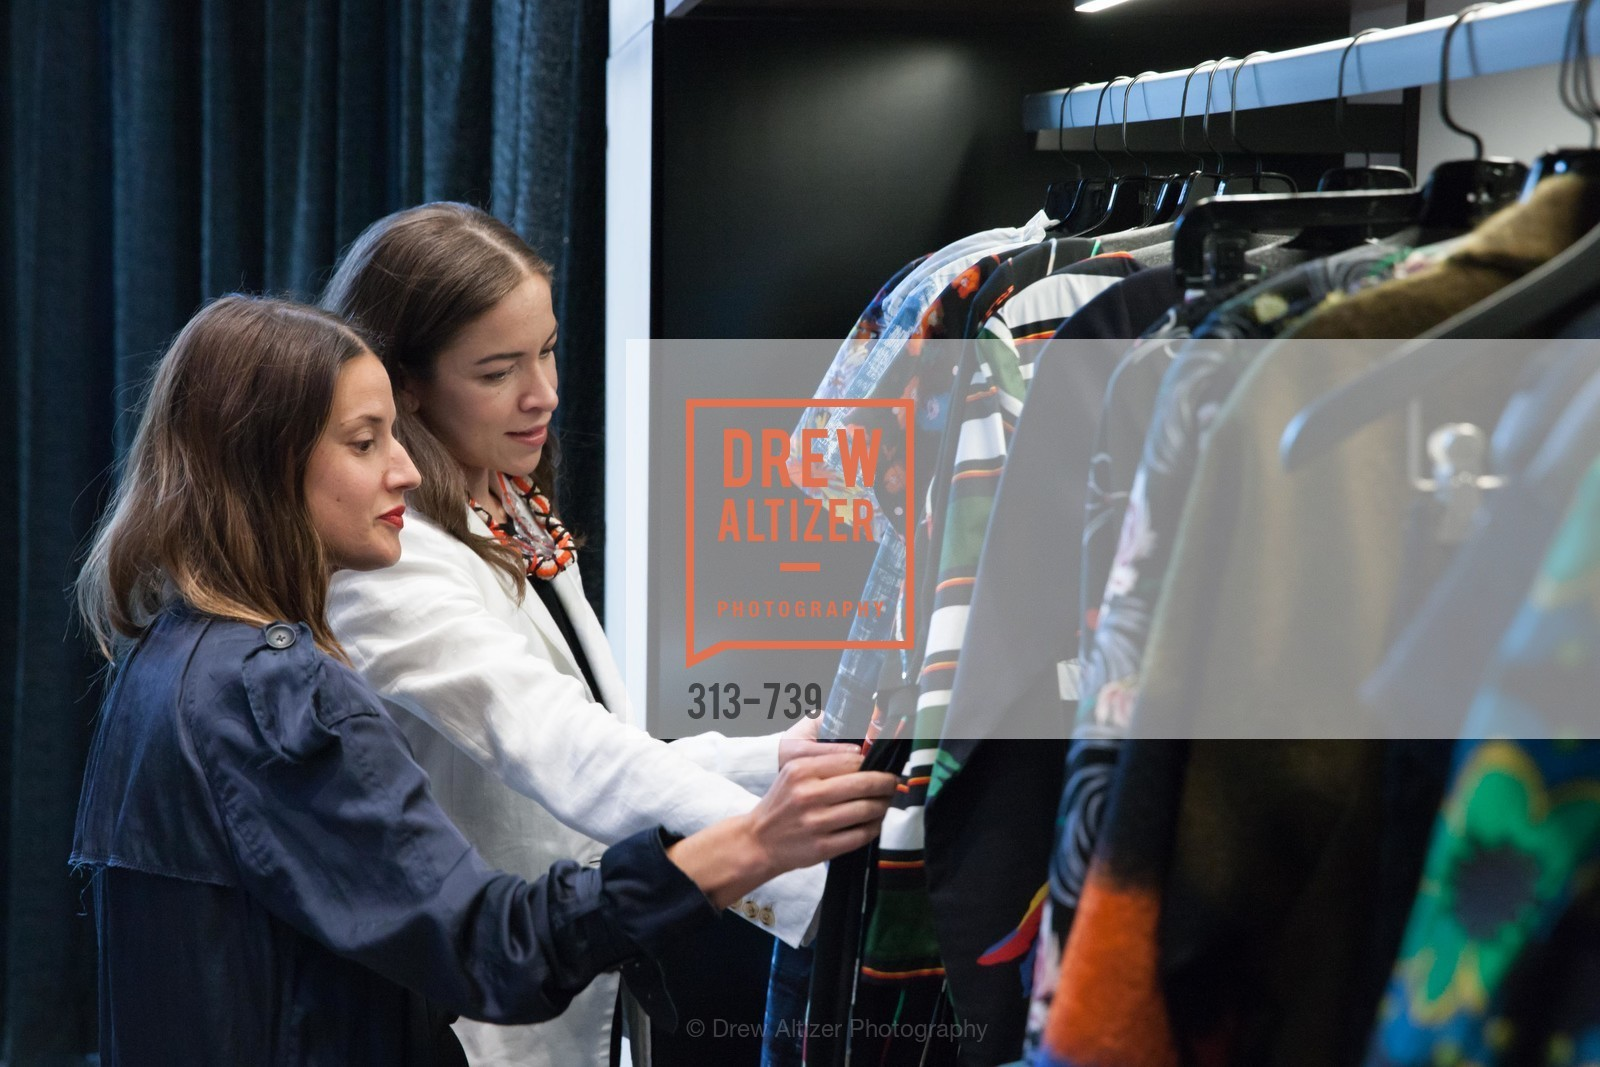 Rachel Walters, Allison Hall, BETTY LIN Store Opening - VIPS, US, May 19th, 2015,Drew Altizer, Drew Altizer Photography, full-service agency, private events, San Francisco photographer, photographer california